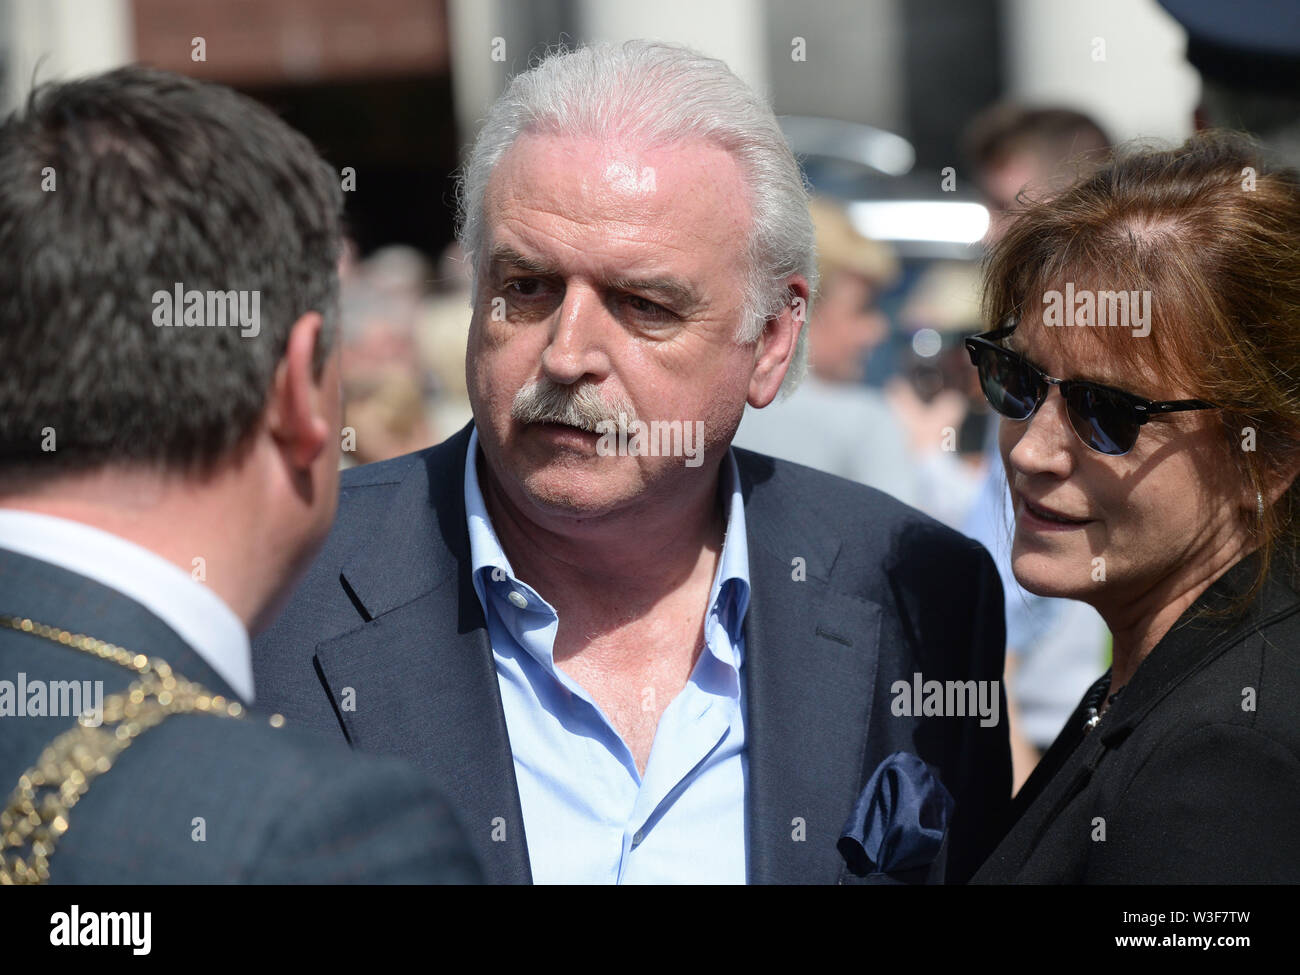 Broadcaster Marty Whelan arrives for the funeral of Father Ted star Brendan Grace at the Church of St. Nicholas of Myra, Dublin. - Stock Image